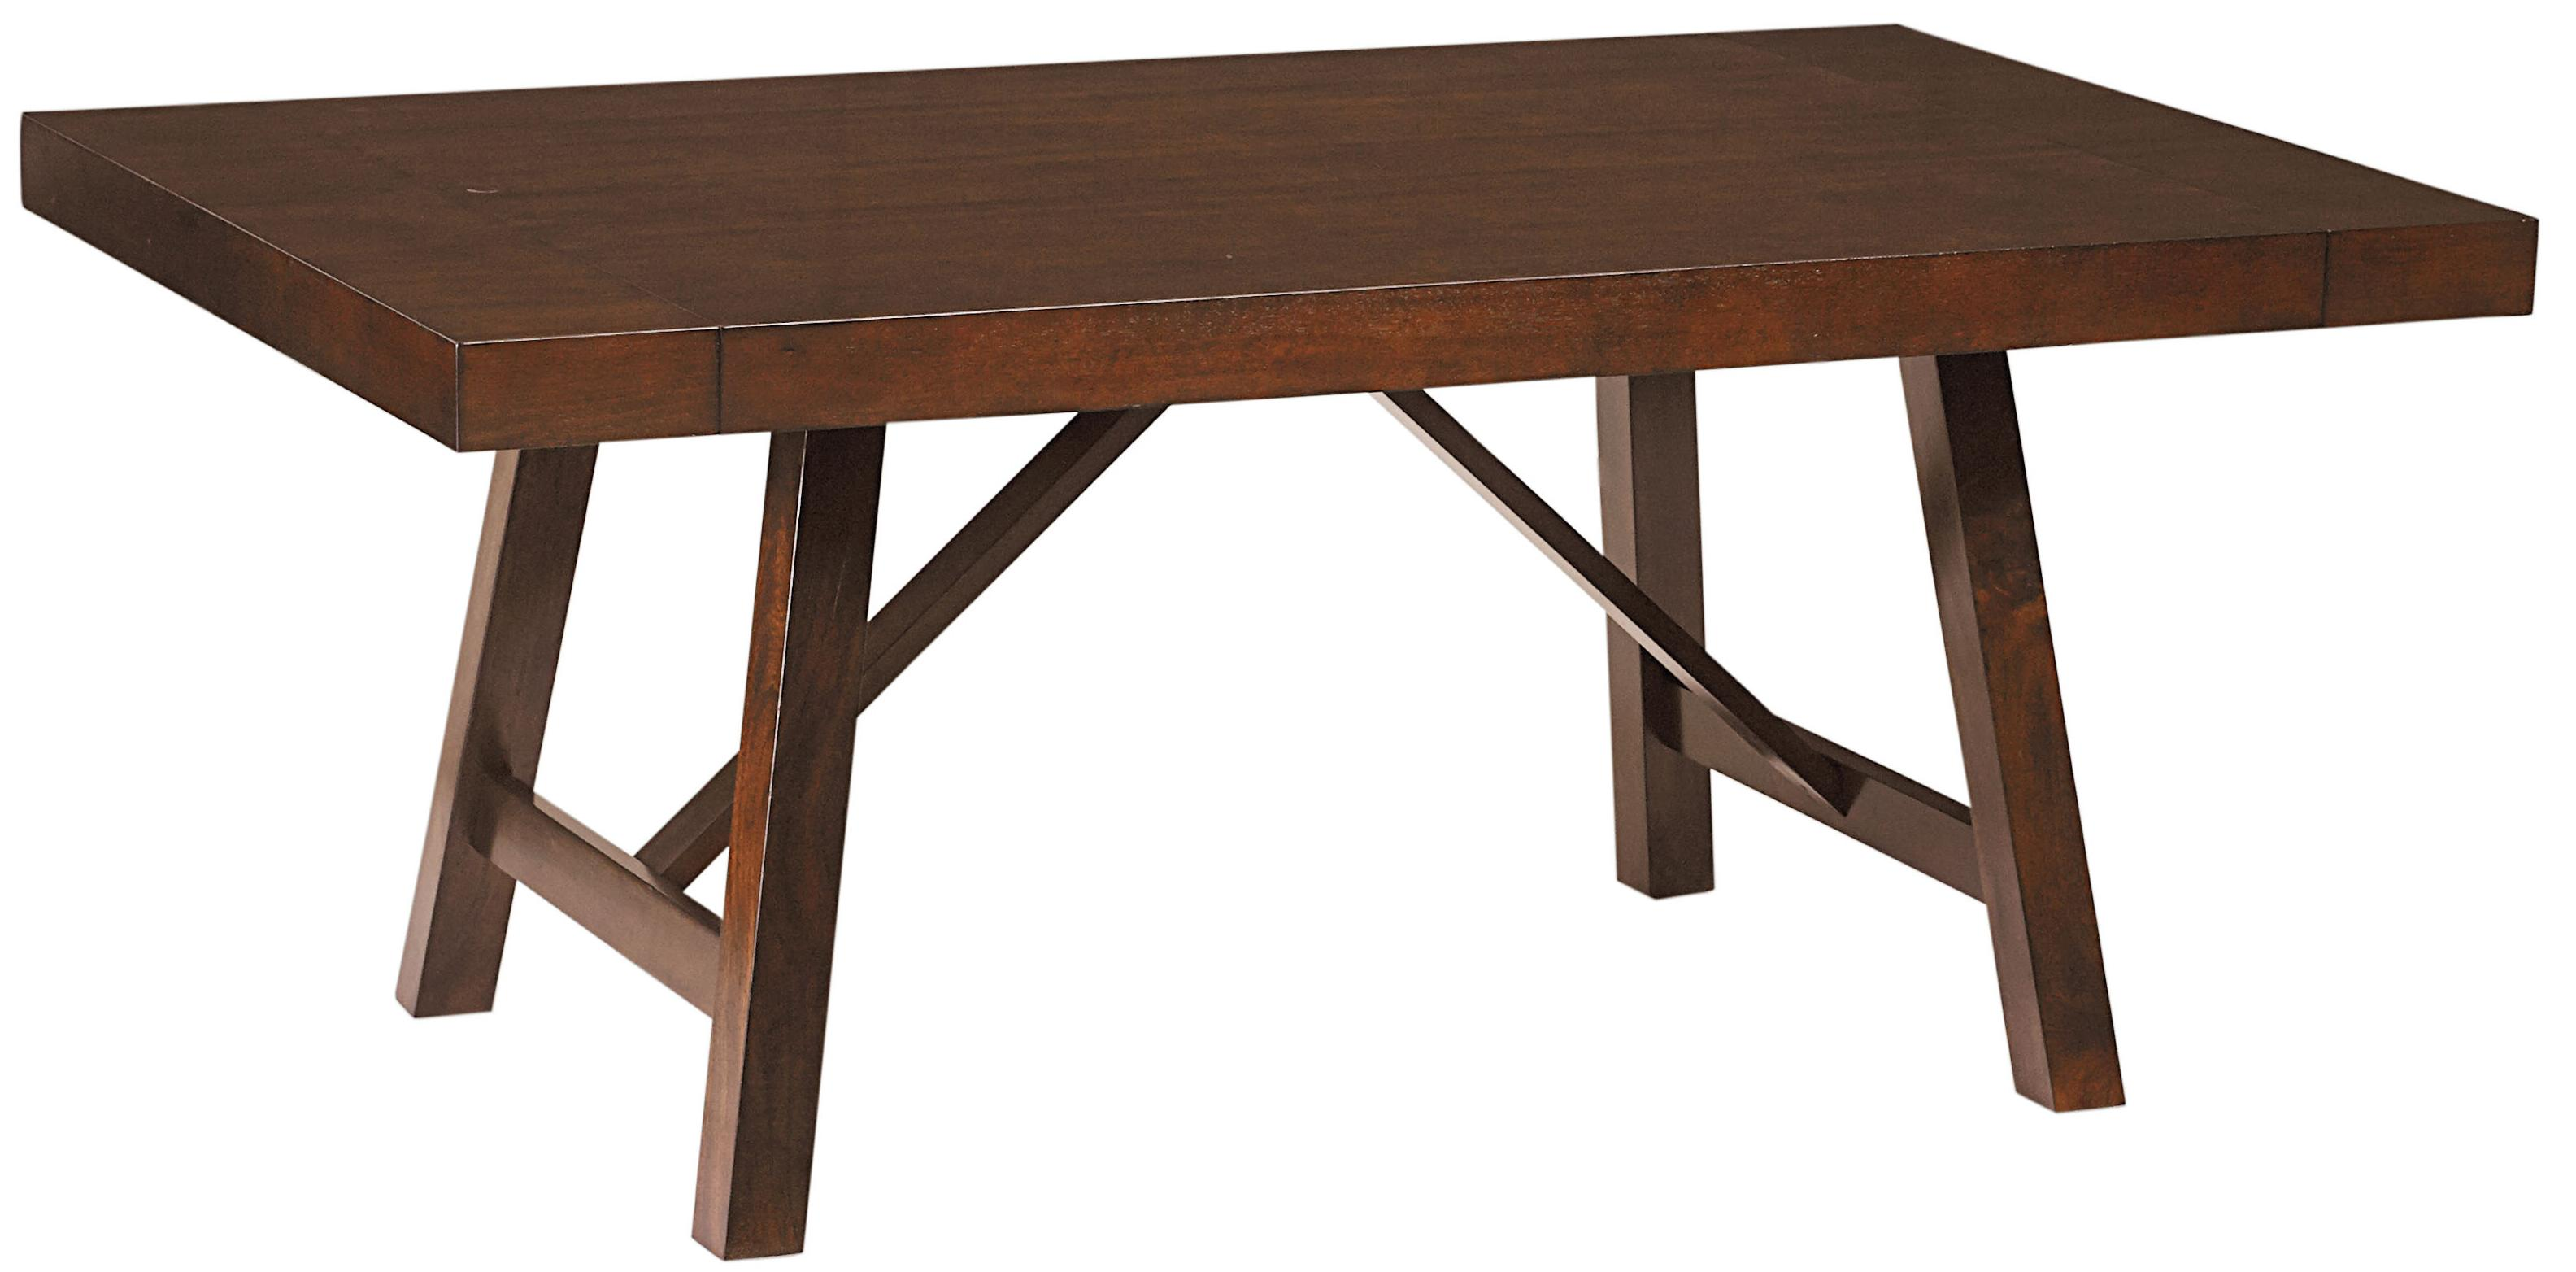 Trestle dining room table with two leaves by standard for Dining room tables with leaves